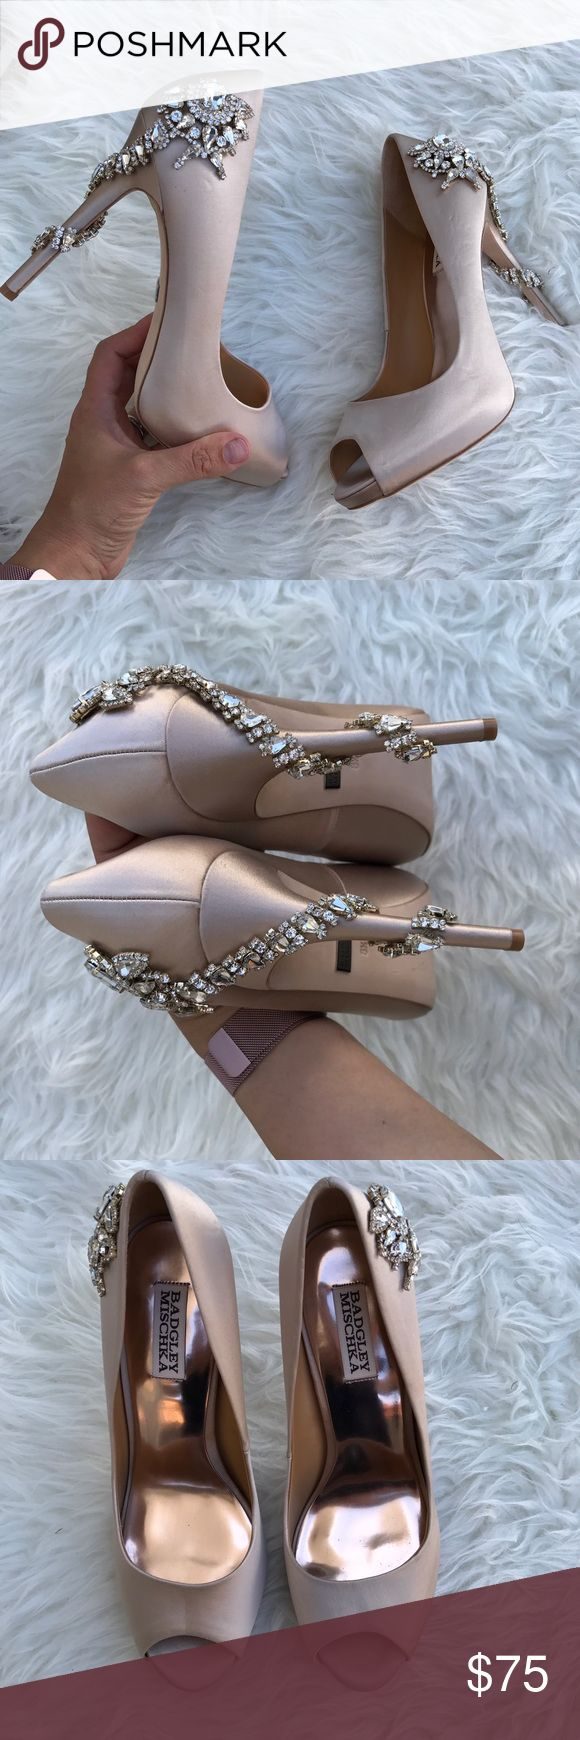 BADGLEY MISCHKA JEWELED pumps Sz 8.5 New BADGLEY MISCHKA JEWELED pumps Sz 8.5 New without box ! STORE DISPLAY! Store display !!!! PLEASE REVIEW PICTURES SINCE THEYRE THE BEST DESCRIPTION OF THE ITEM ! itemcloset#dozer Badgley Mischka Shoes